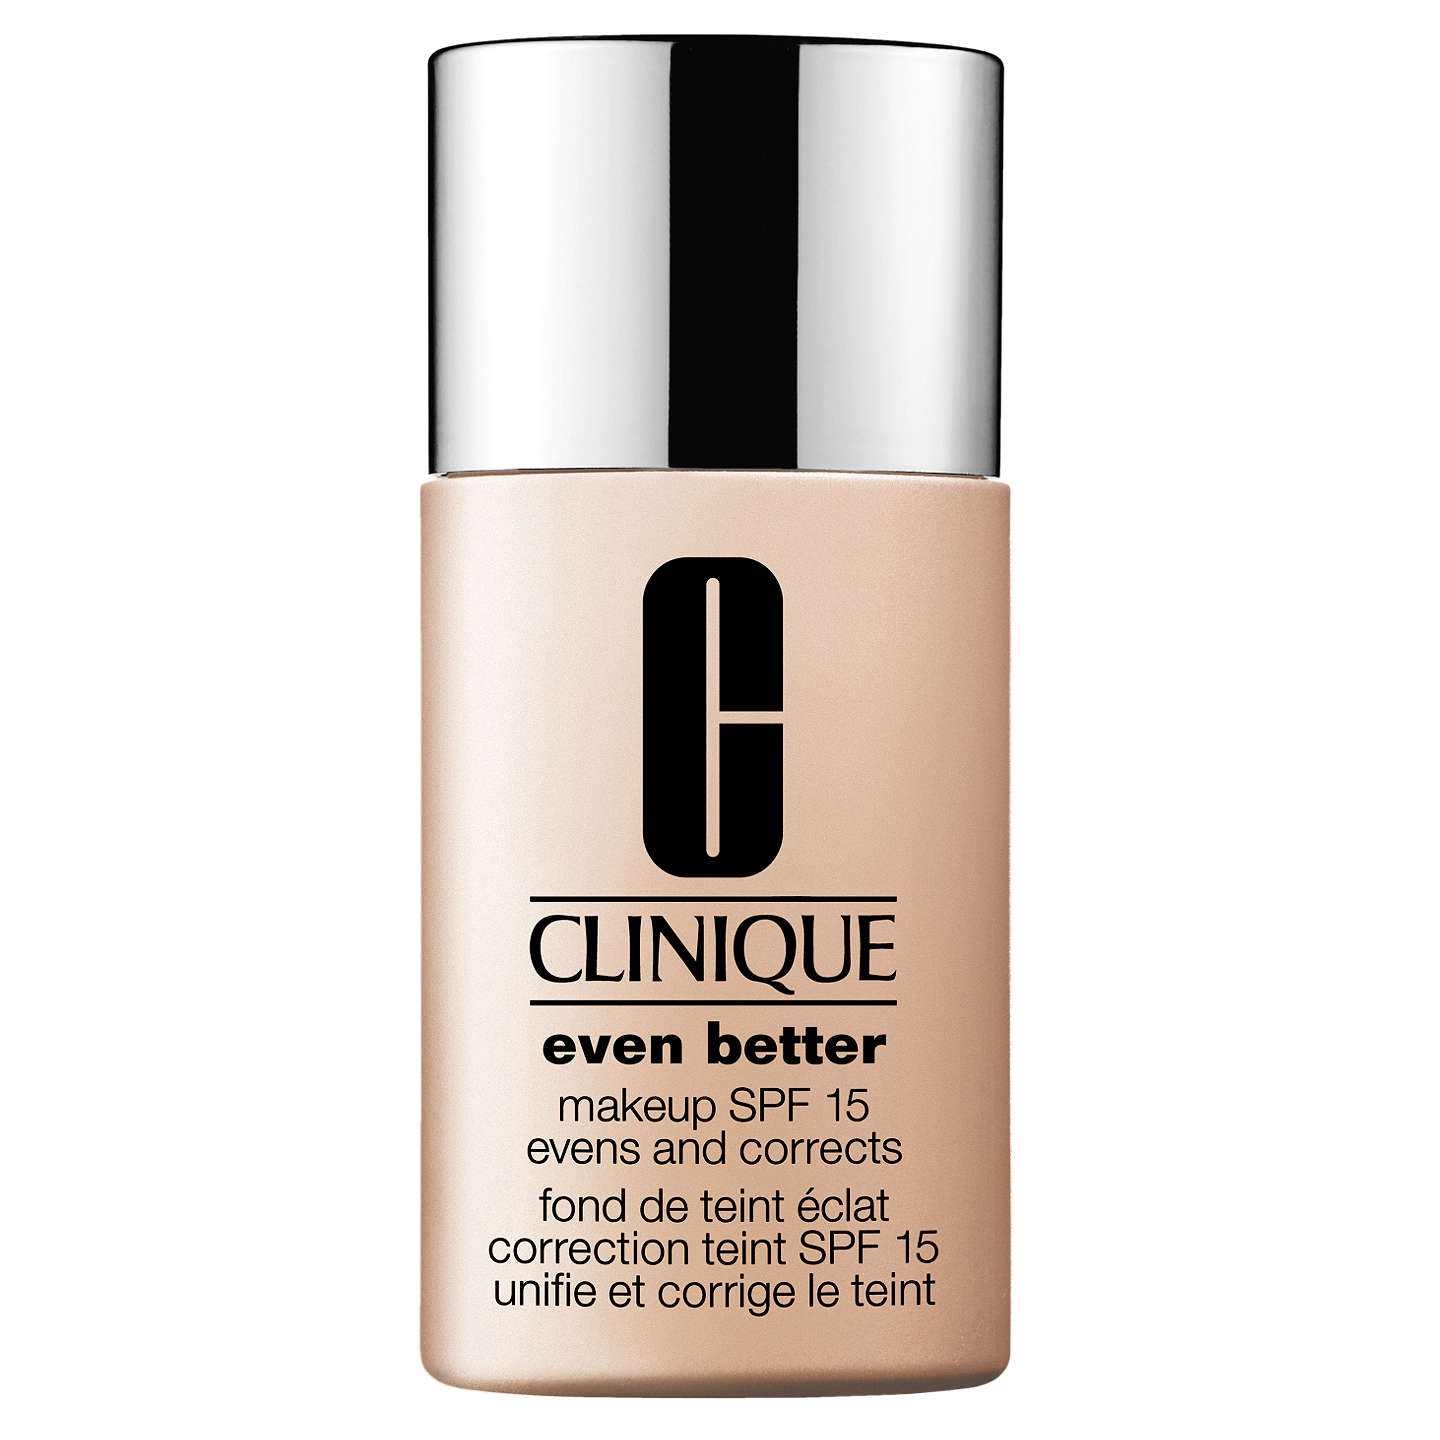 BuyClinique Even Better Makeup SPF15 - Normal to Combination Oily Skin Types, Sand Online at johnlewis.com